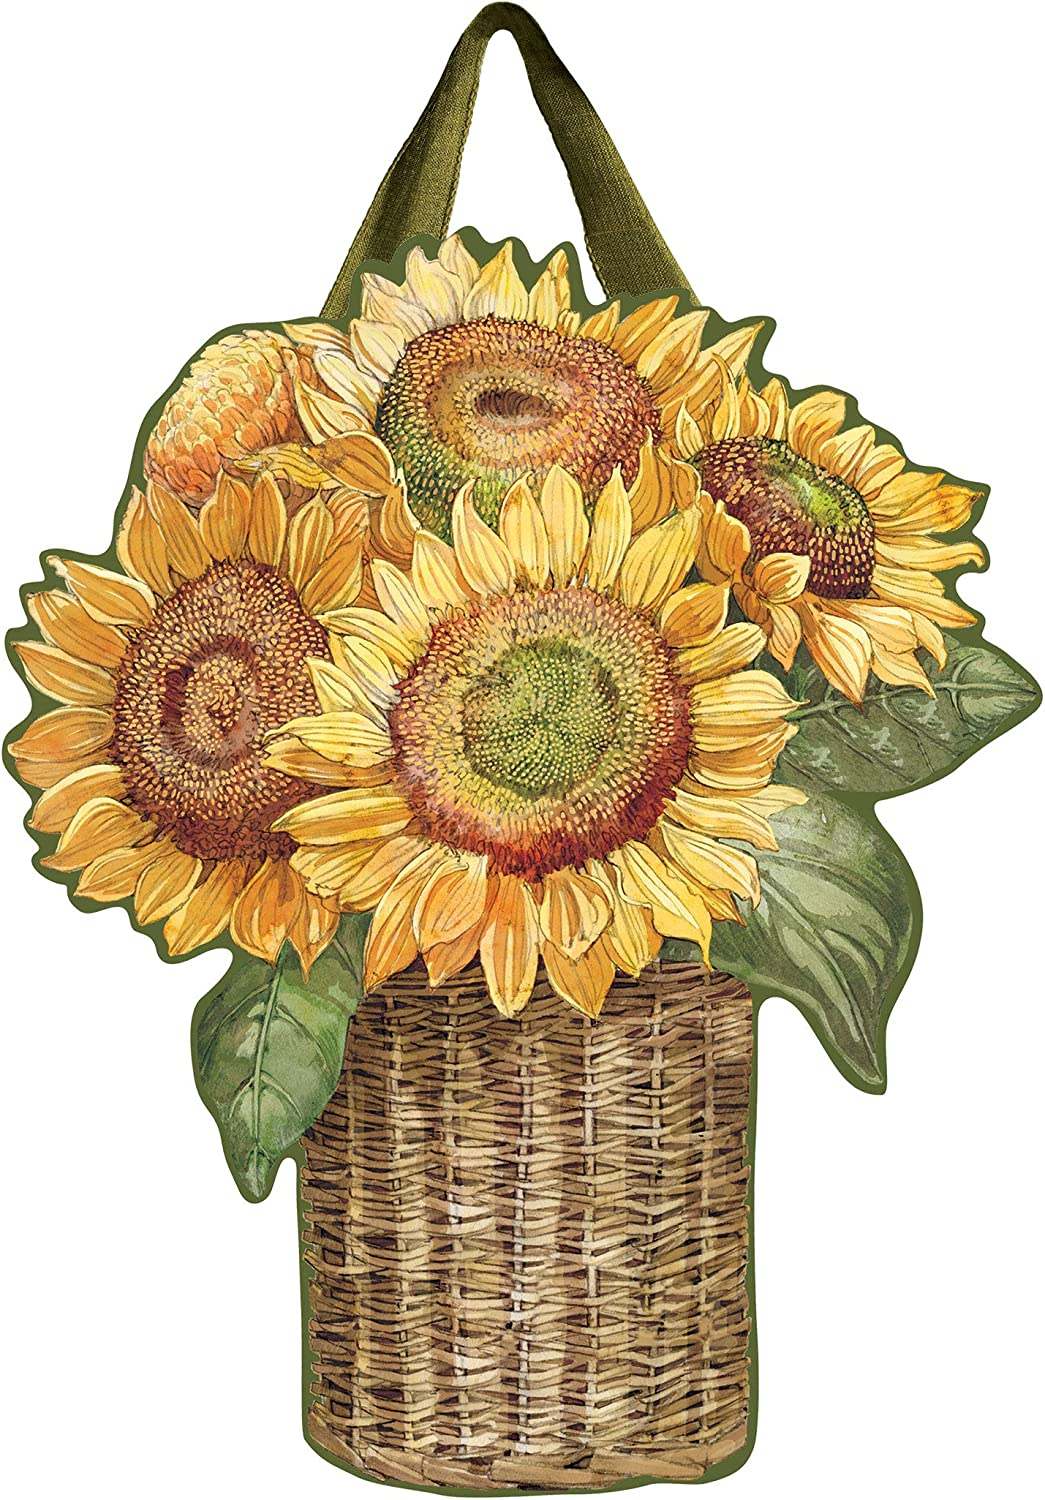 Studio M Outdoor-Safe Front Door Décor, 18.25 x 22.25-Inches, Farmhouse Sunflower